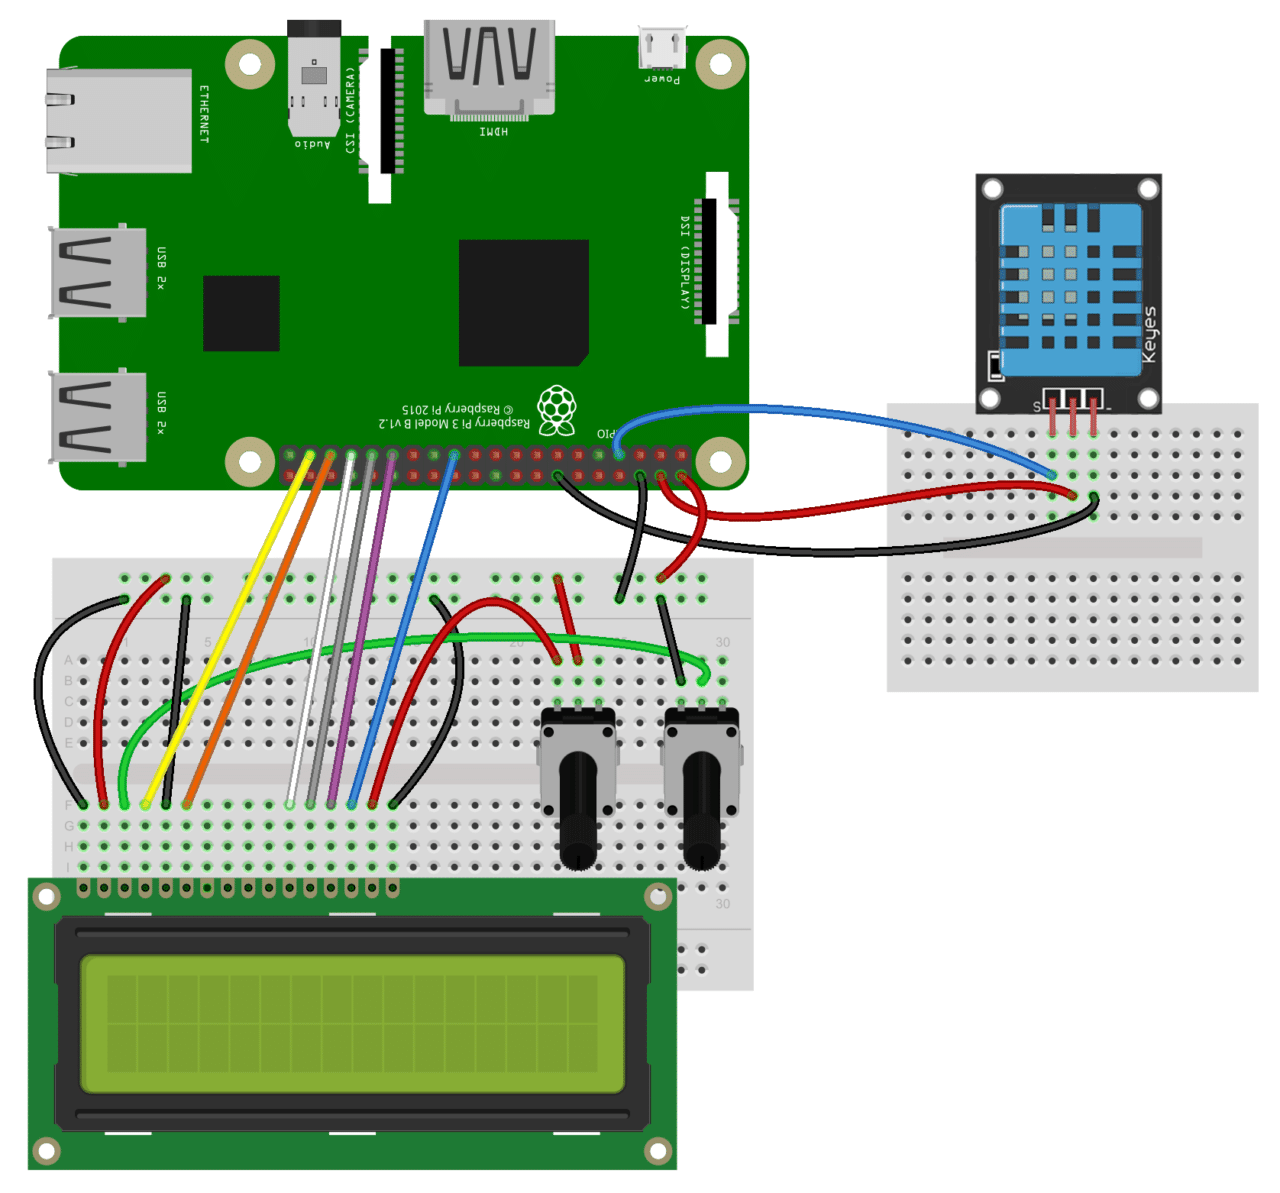 How To Set Up The Dht11 Humidity Sensor On Raspberry Pi Circuit Wiring Definition For Lcd Output